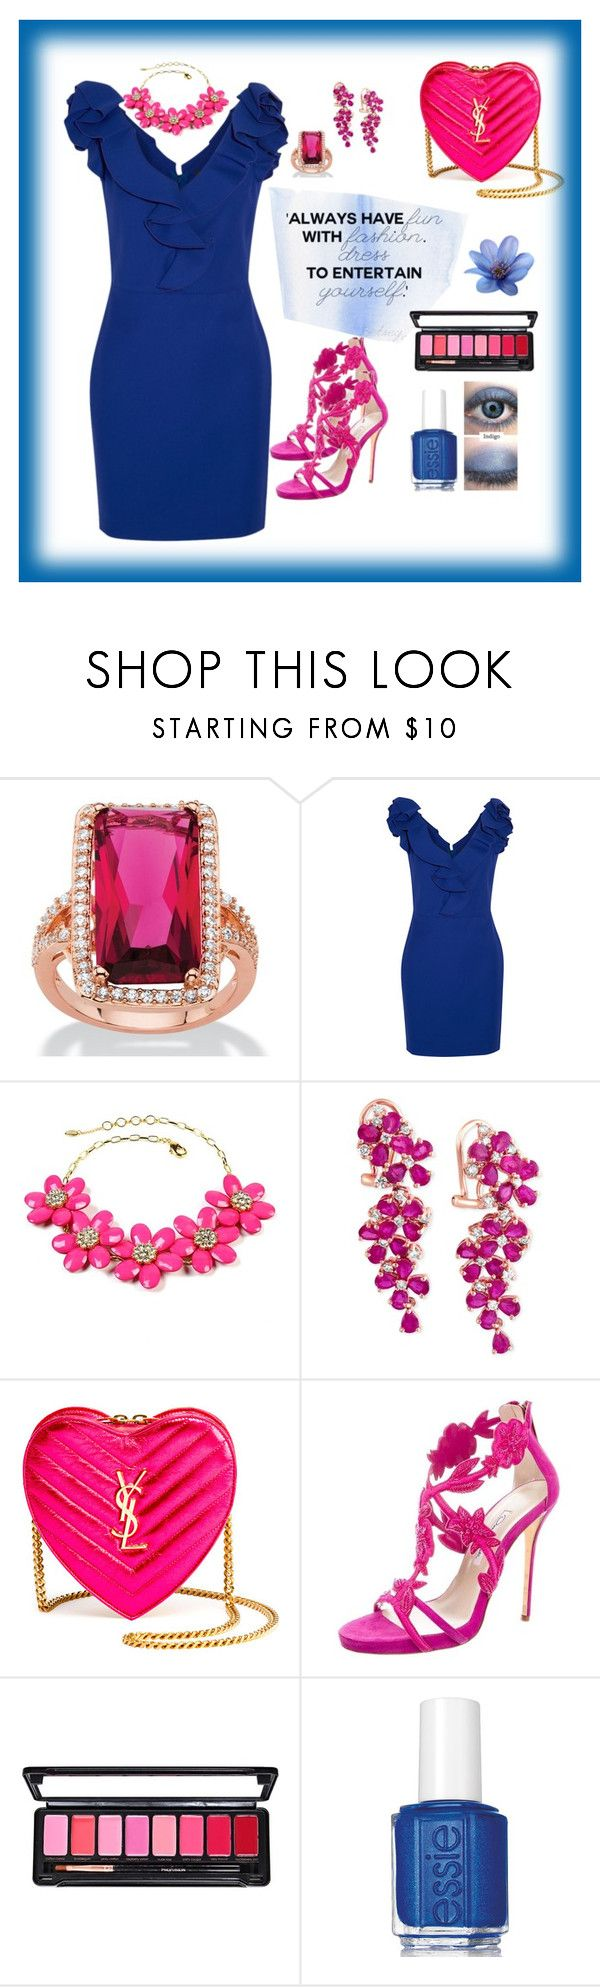 """Bez naslova #3"" by di-kah ❤ liked on Polyvore featuring Lanvin, Amrita Singh, Effy Jewelry, Yves Saint Laurent, Oscar de la Renta and Essie"